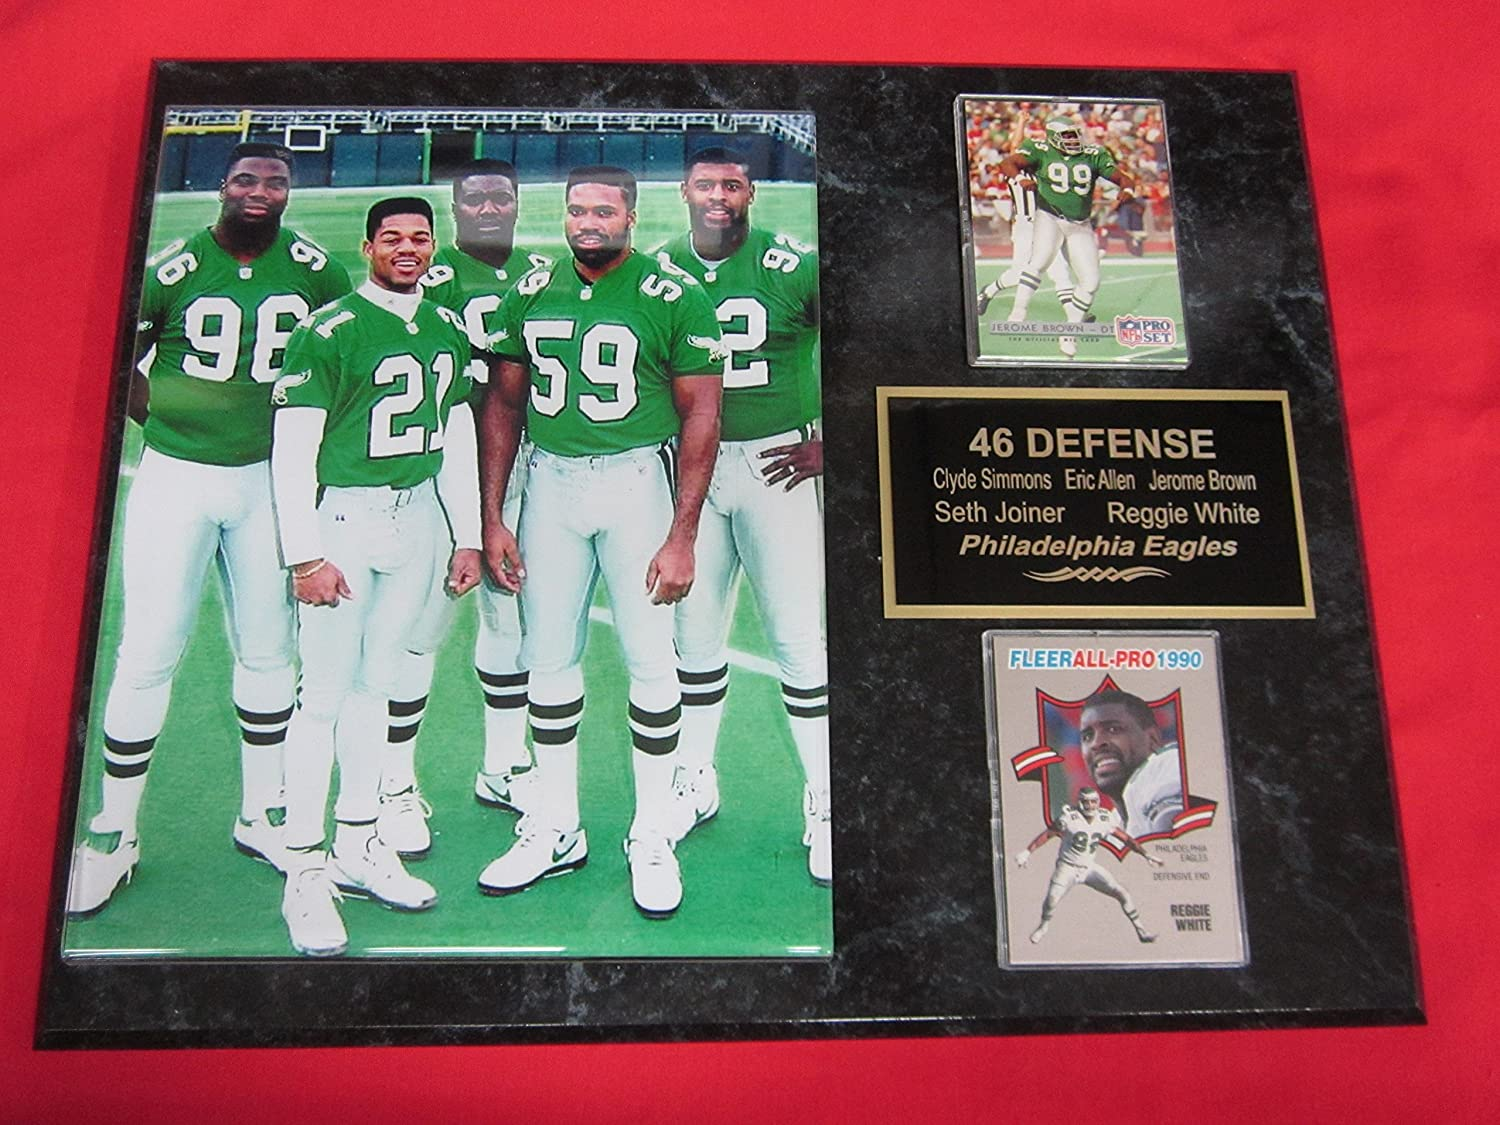 7b6e2b1fb2c Amazon.com : Eagles 46 Defense REGGIE WHITE JEROME BROWN Simmons Joyner 2  Card Collector Plaque w/8x10 Photo : Sports & Outdoors